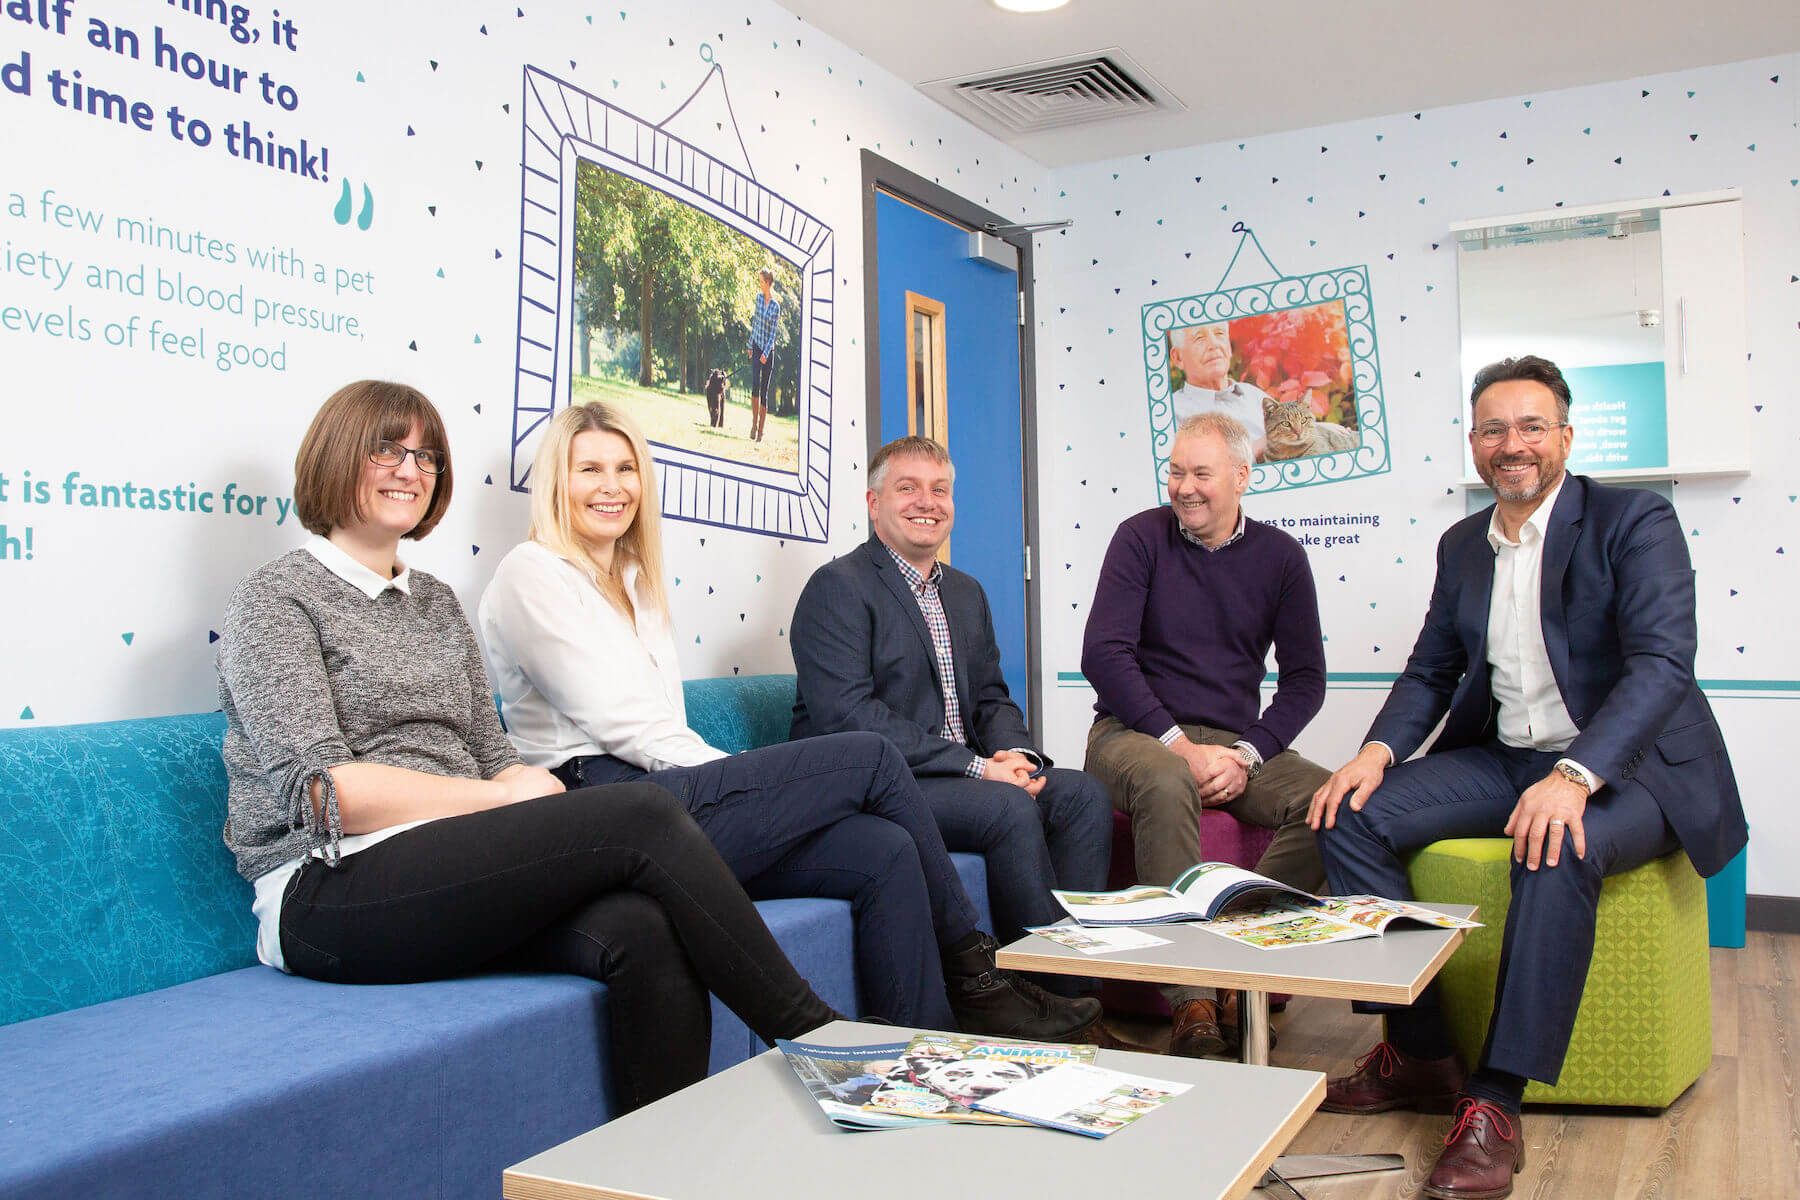 Relaxing in the adoption lounge at the new RSPCA Radcliffe building are, from left, Rachel Jenkins, of Williams Architects, Centre Manager Ella Carpenter, Chris Turner of Integra Buildings, Clive Williams of Williams Architects, and Integra's Gary Parker.